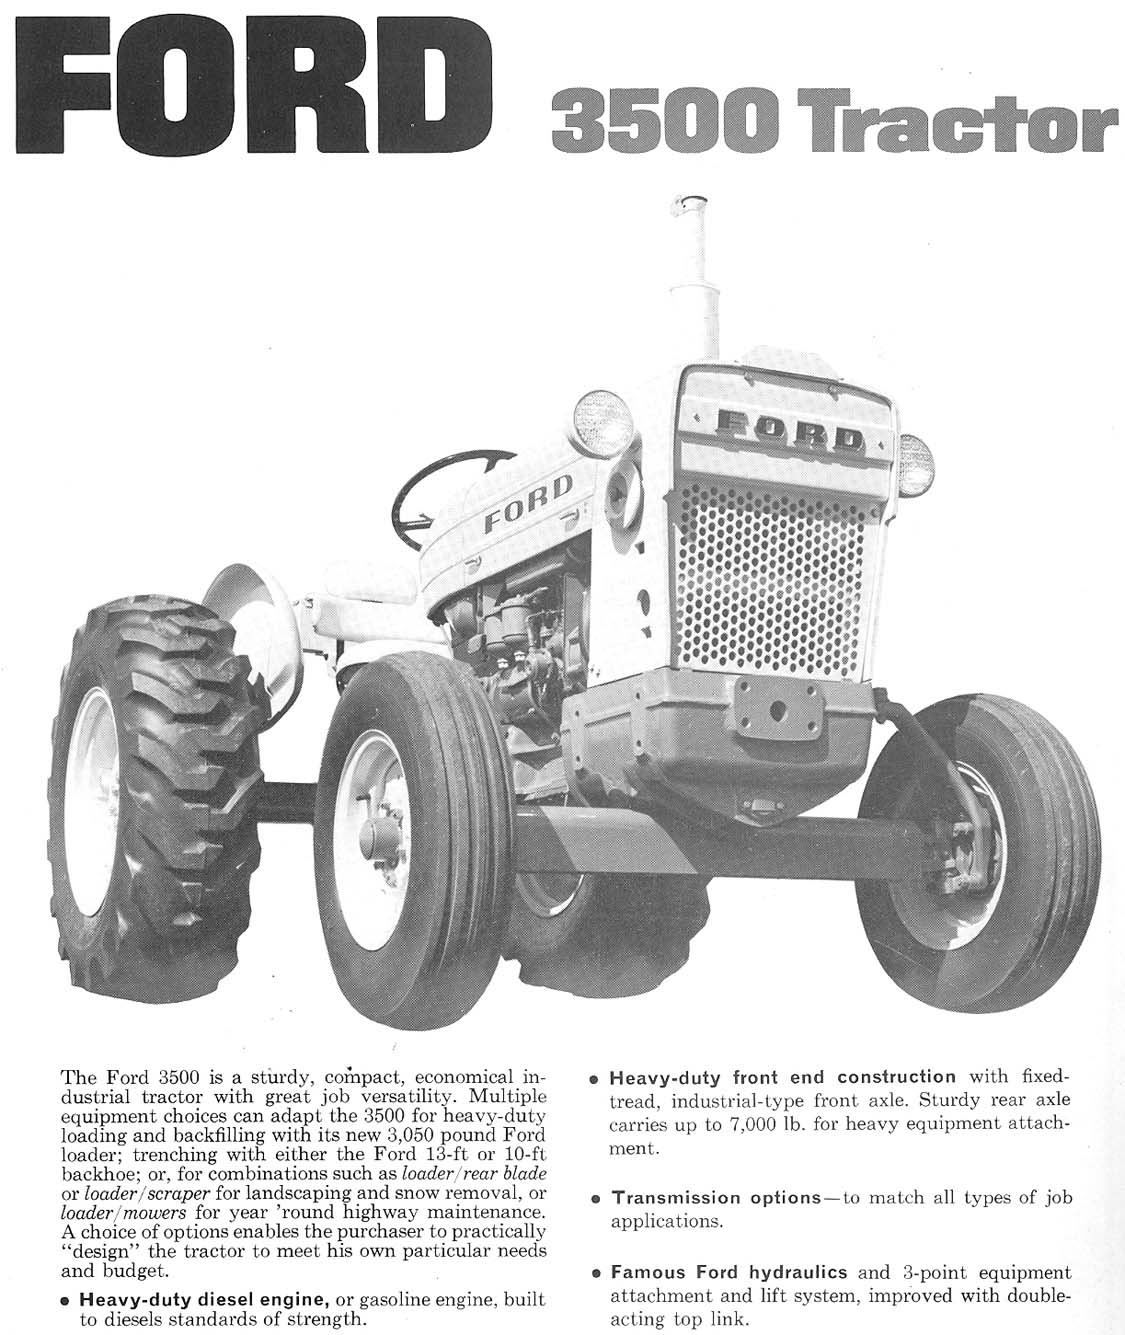 Ford 3500 Tractor : Ford stage tractor ad brochure